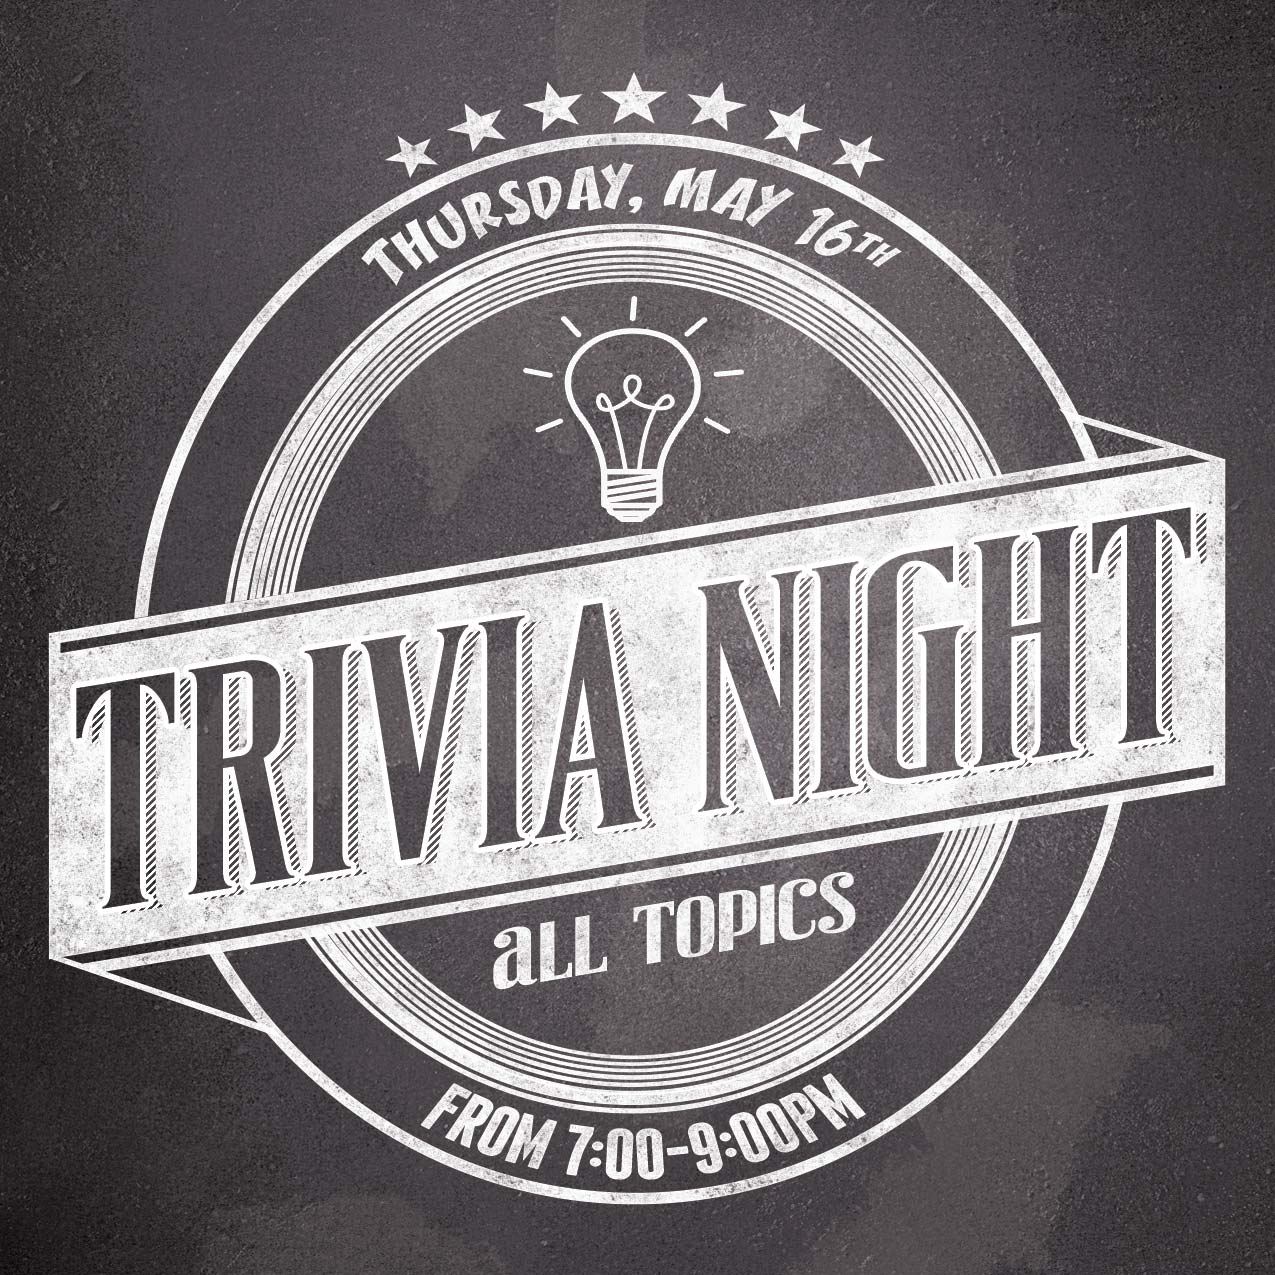 2019-05-16_TriviaNight-Instagram.jpg